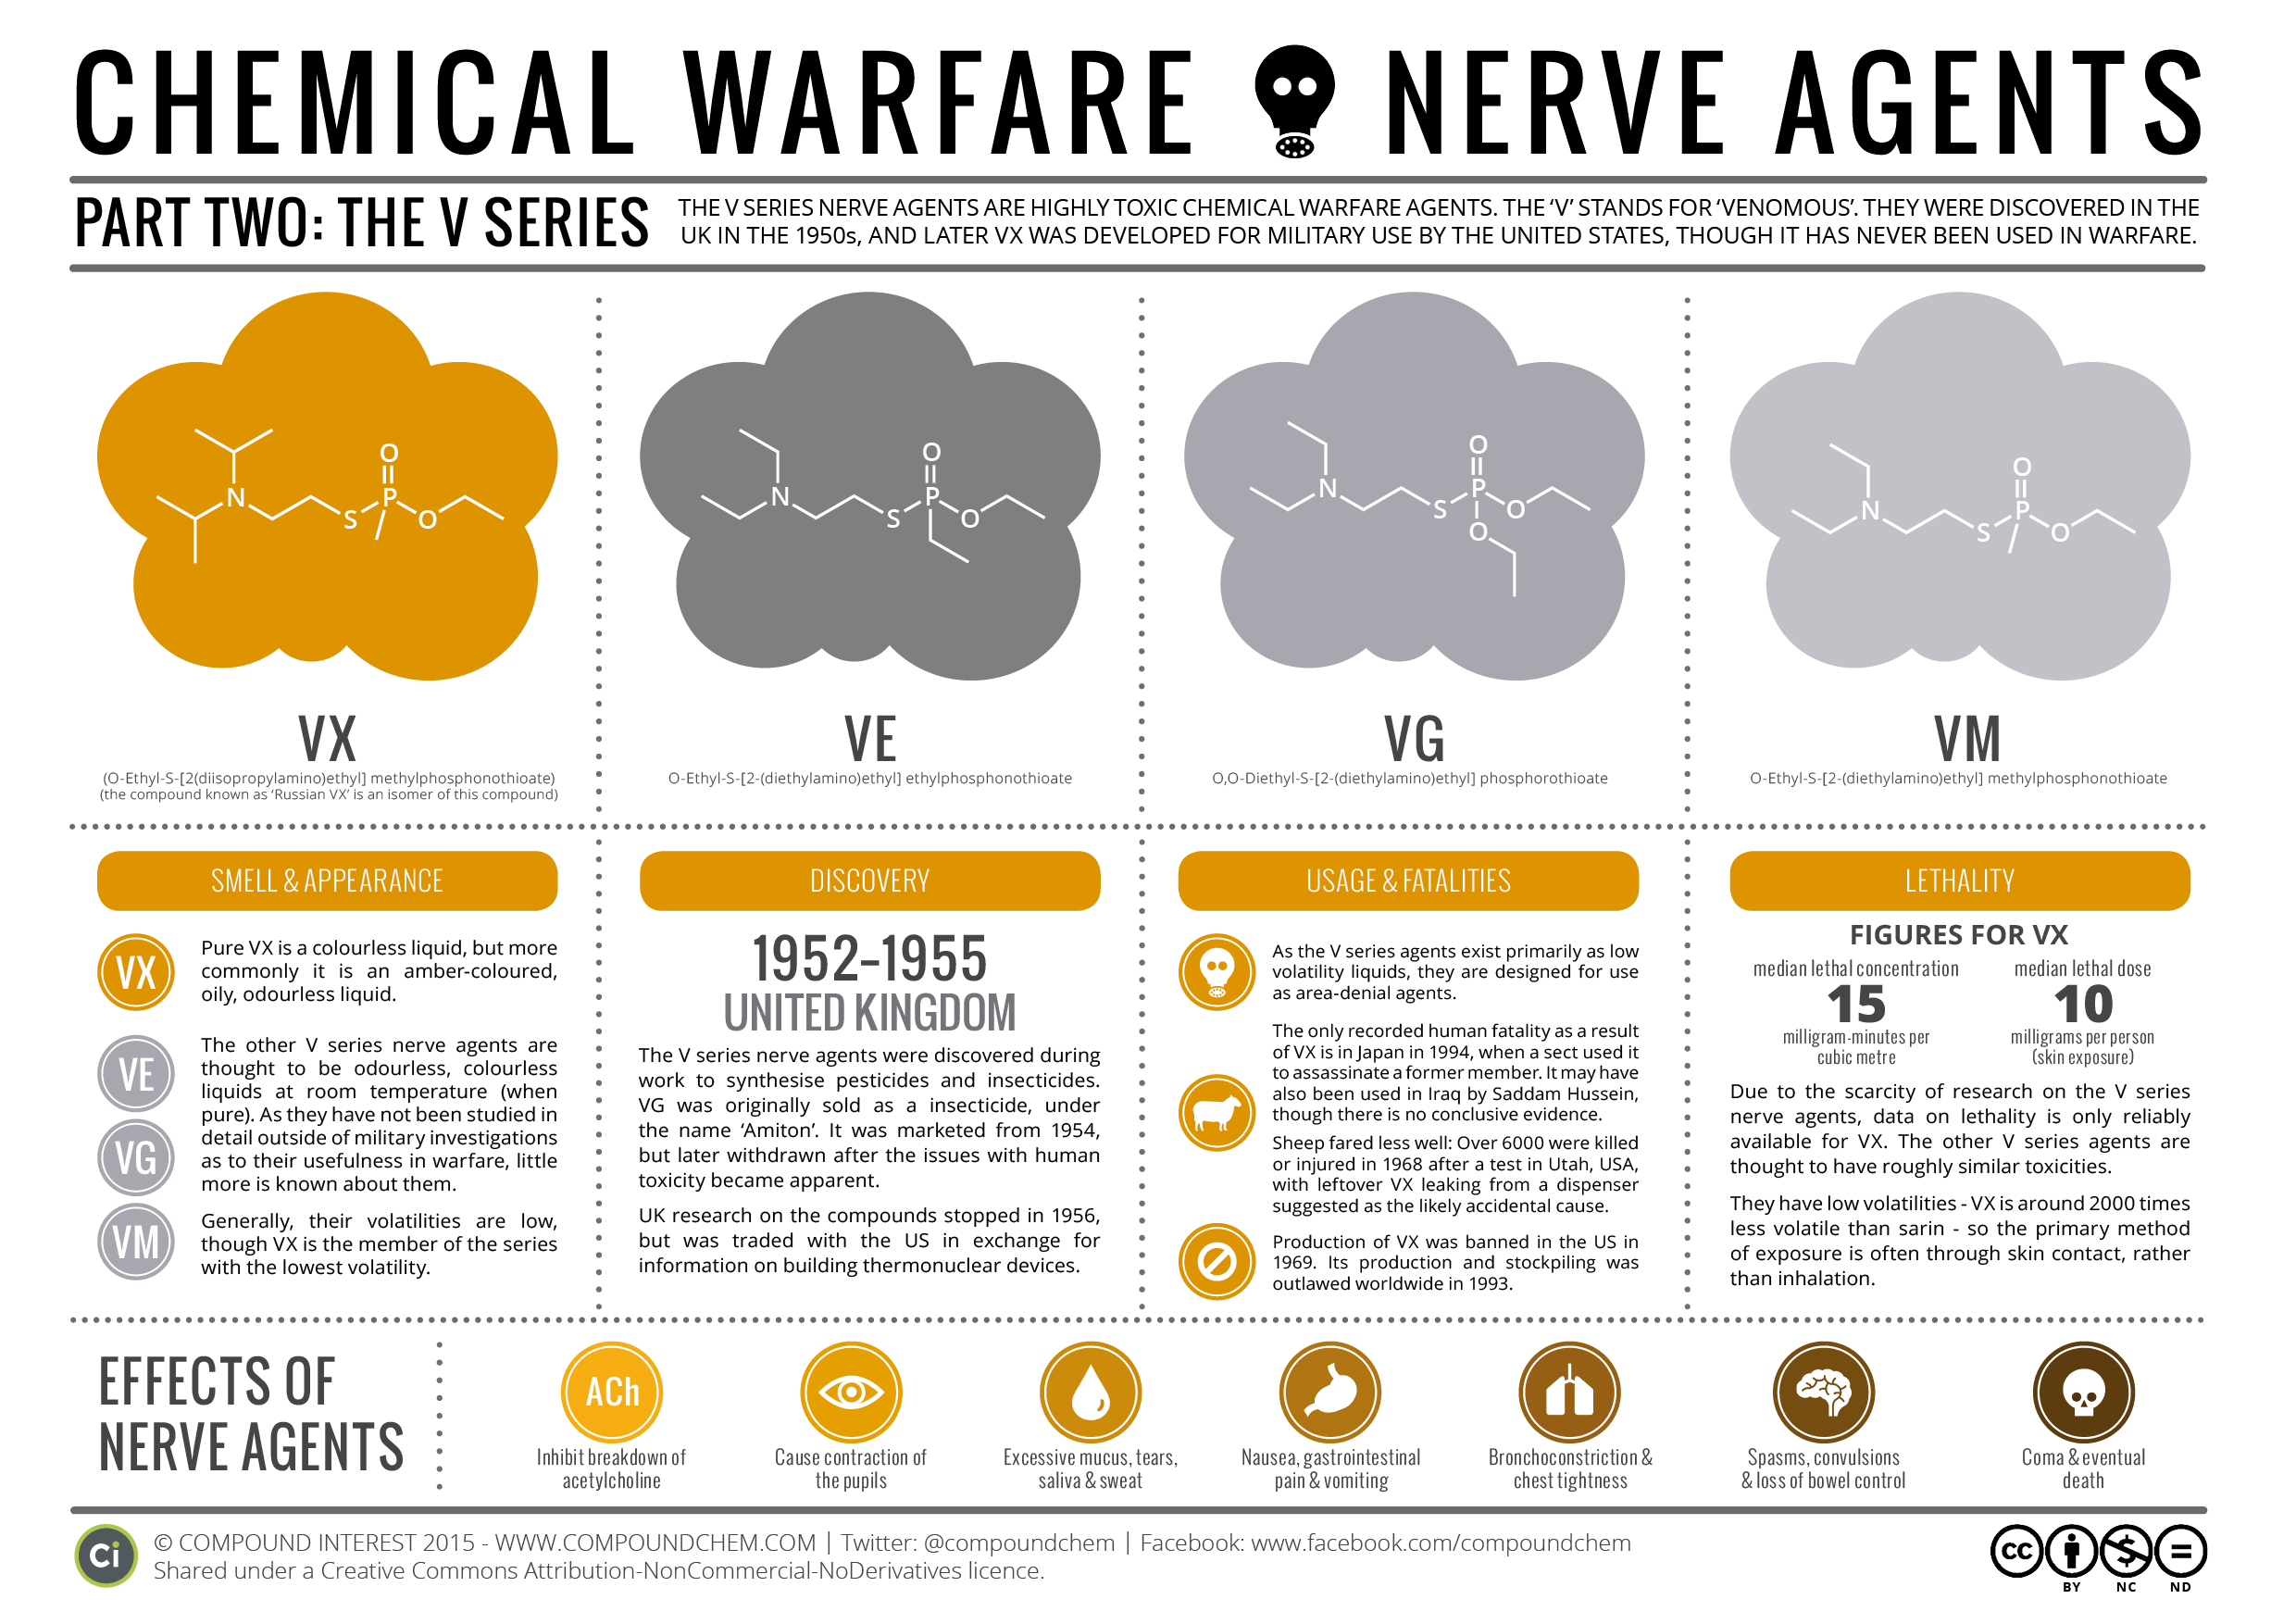 Chemical Warfare - Nerve Agents - Pt II The V Series